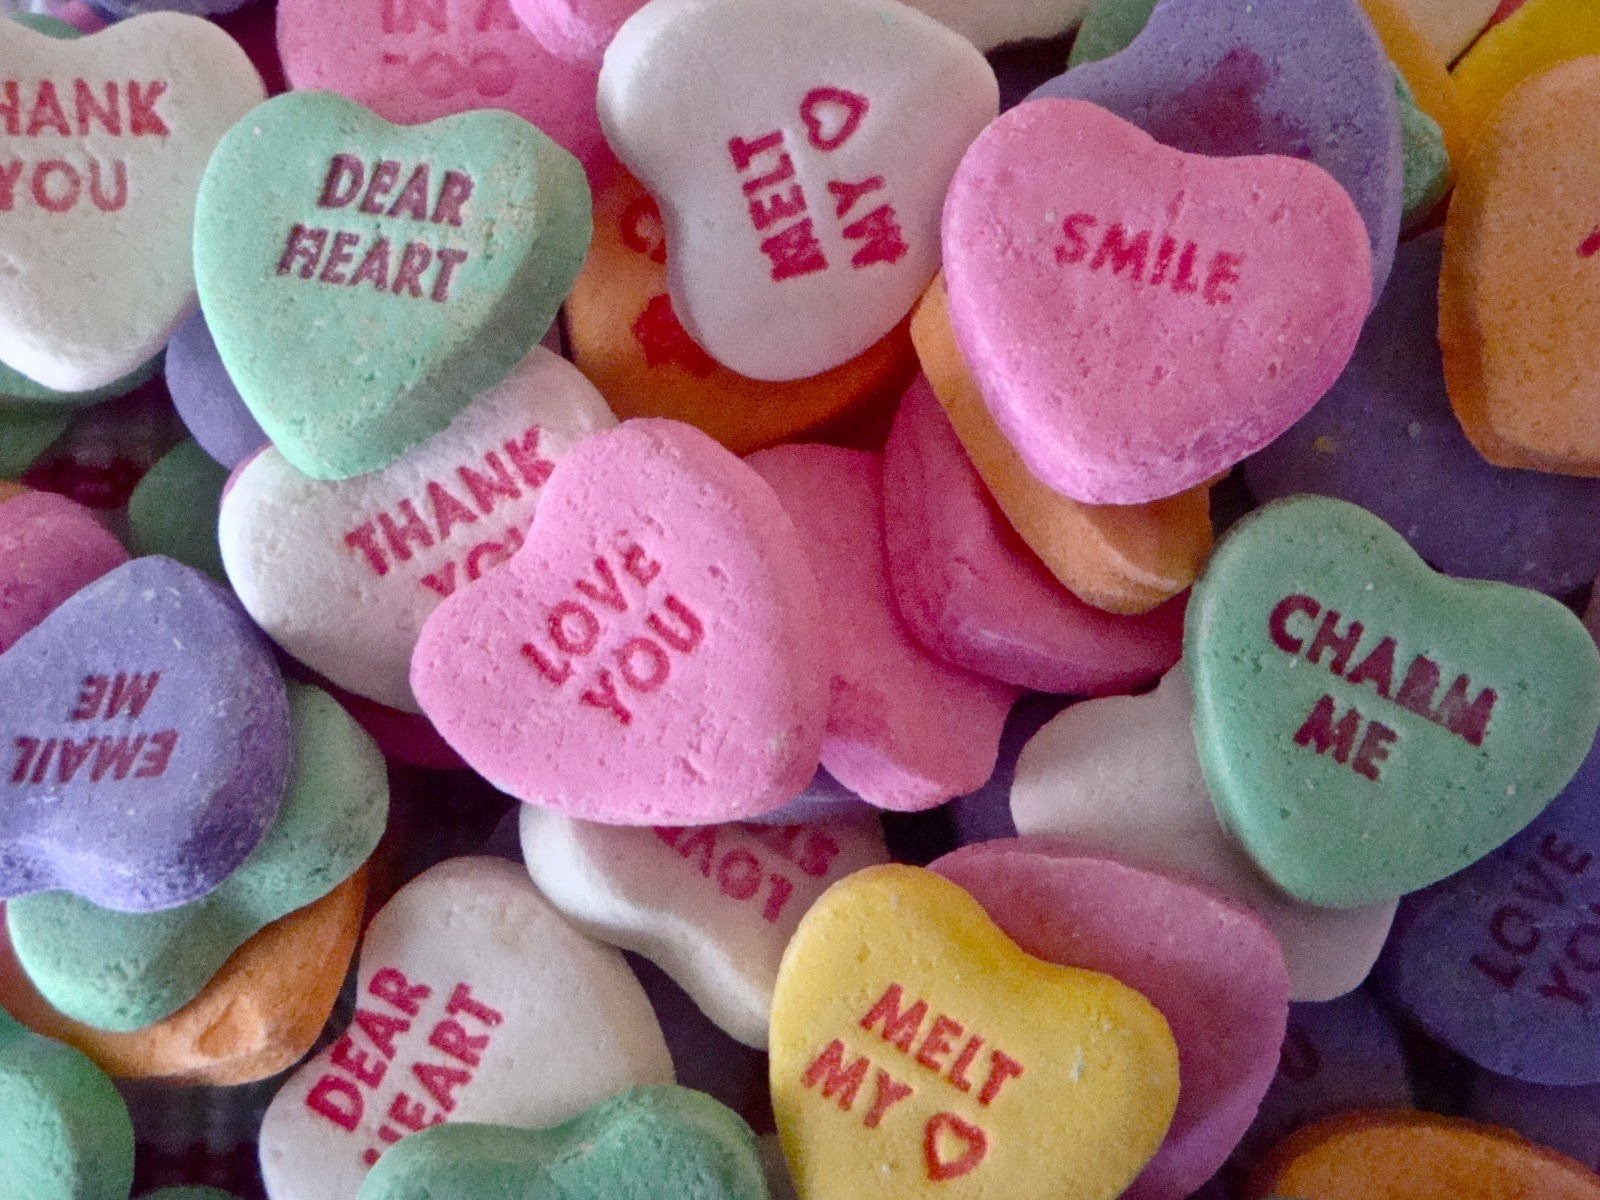 From Saintly Starts To Candy Hearts Smart Girls Group